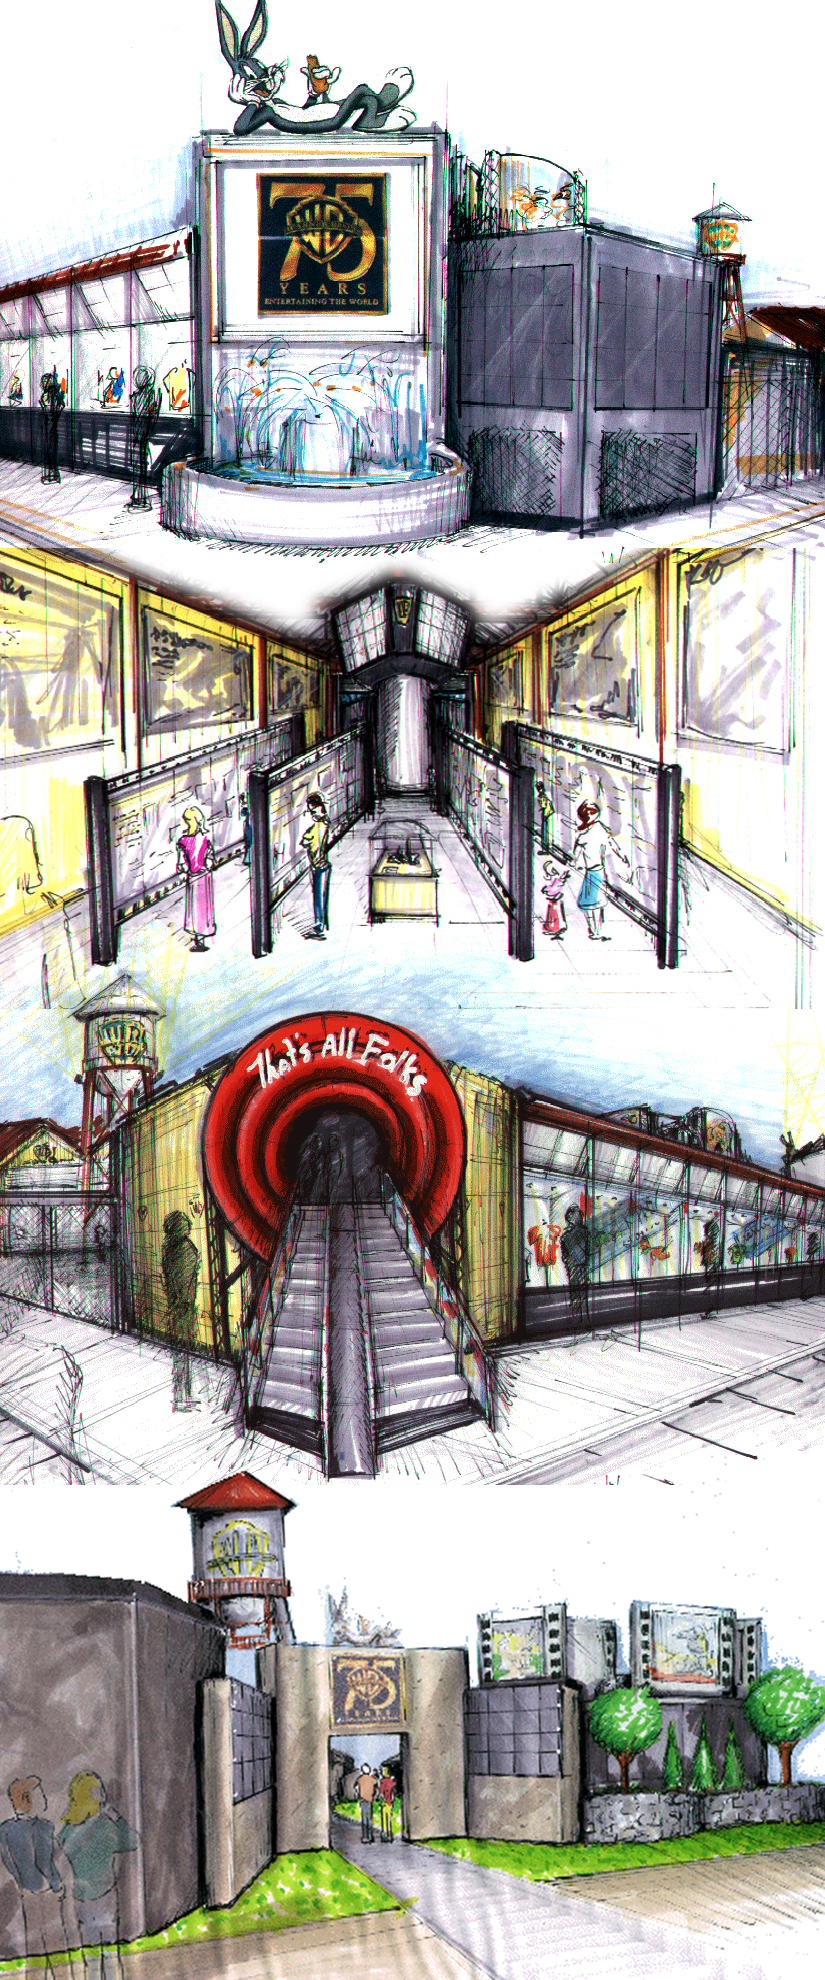 Early renderings for animation museum concept